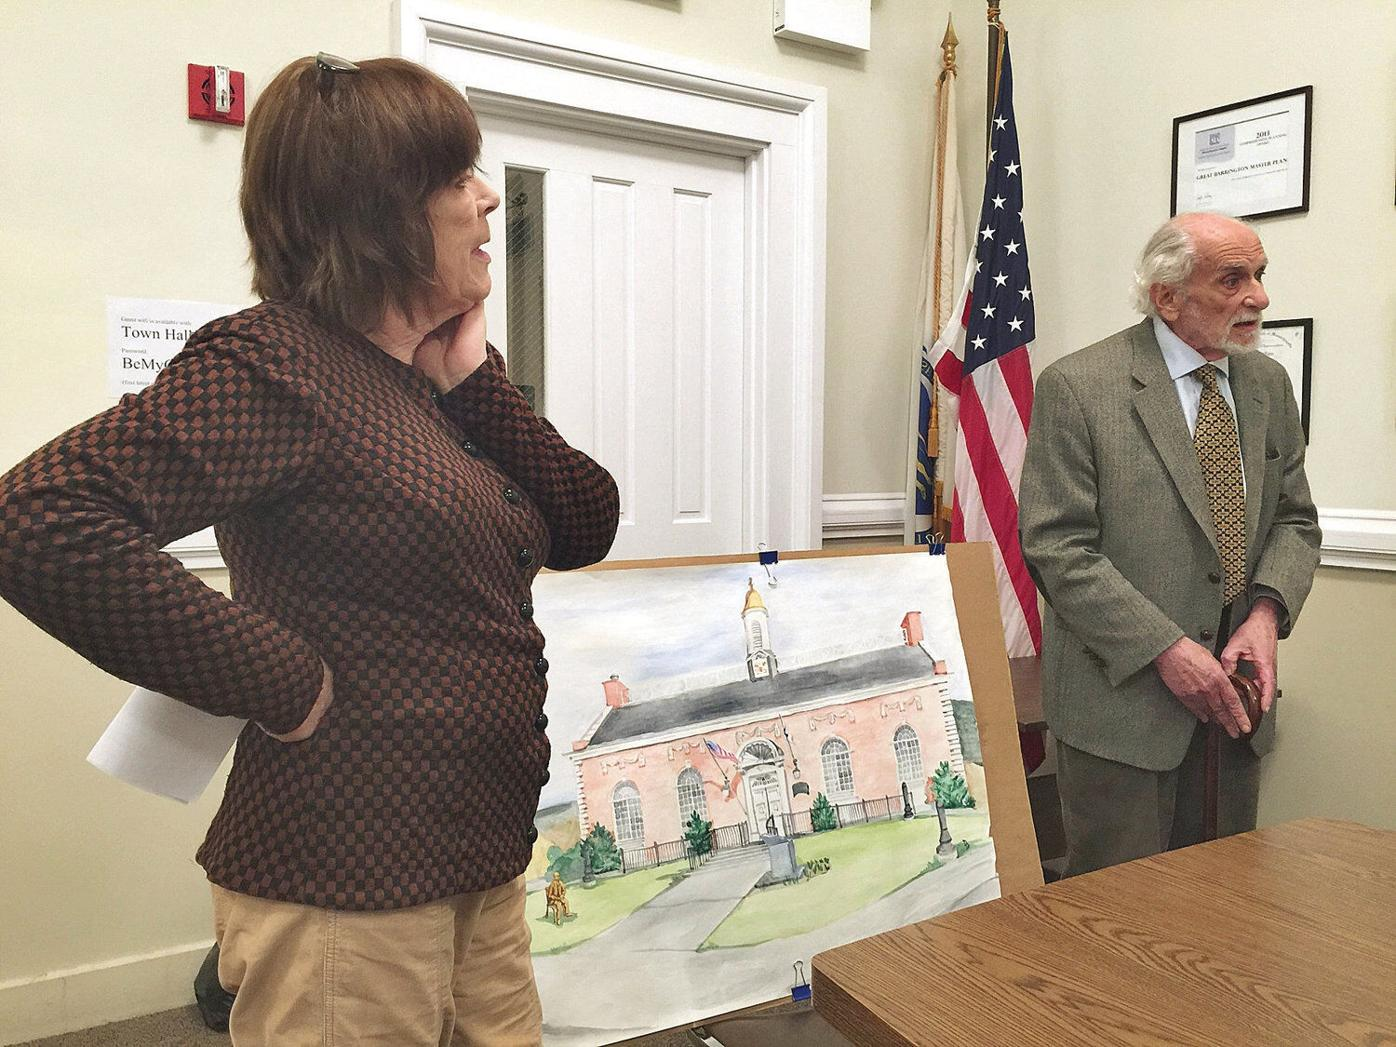 At Great Barrington hearing, Du Bois statue questions center on location